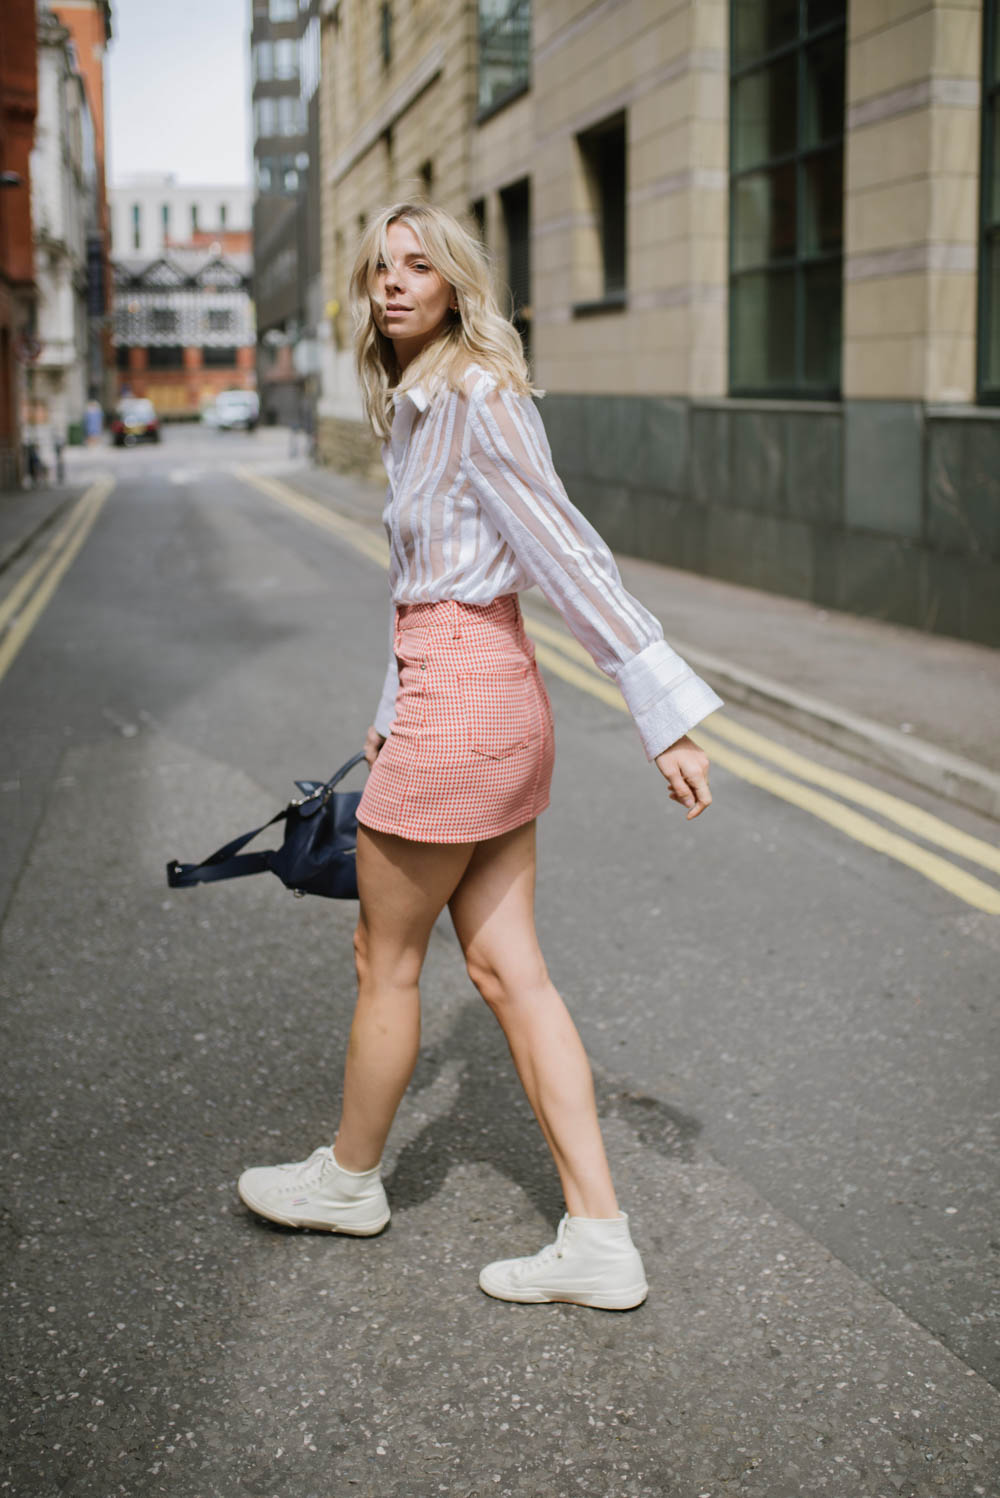 Red-Topshop-skirt-final-edits-6.jpg